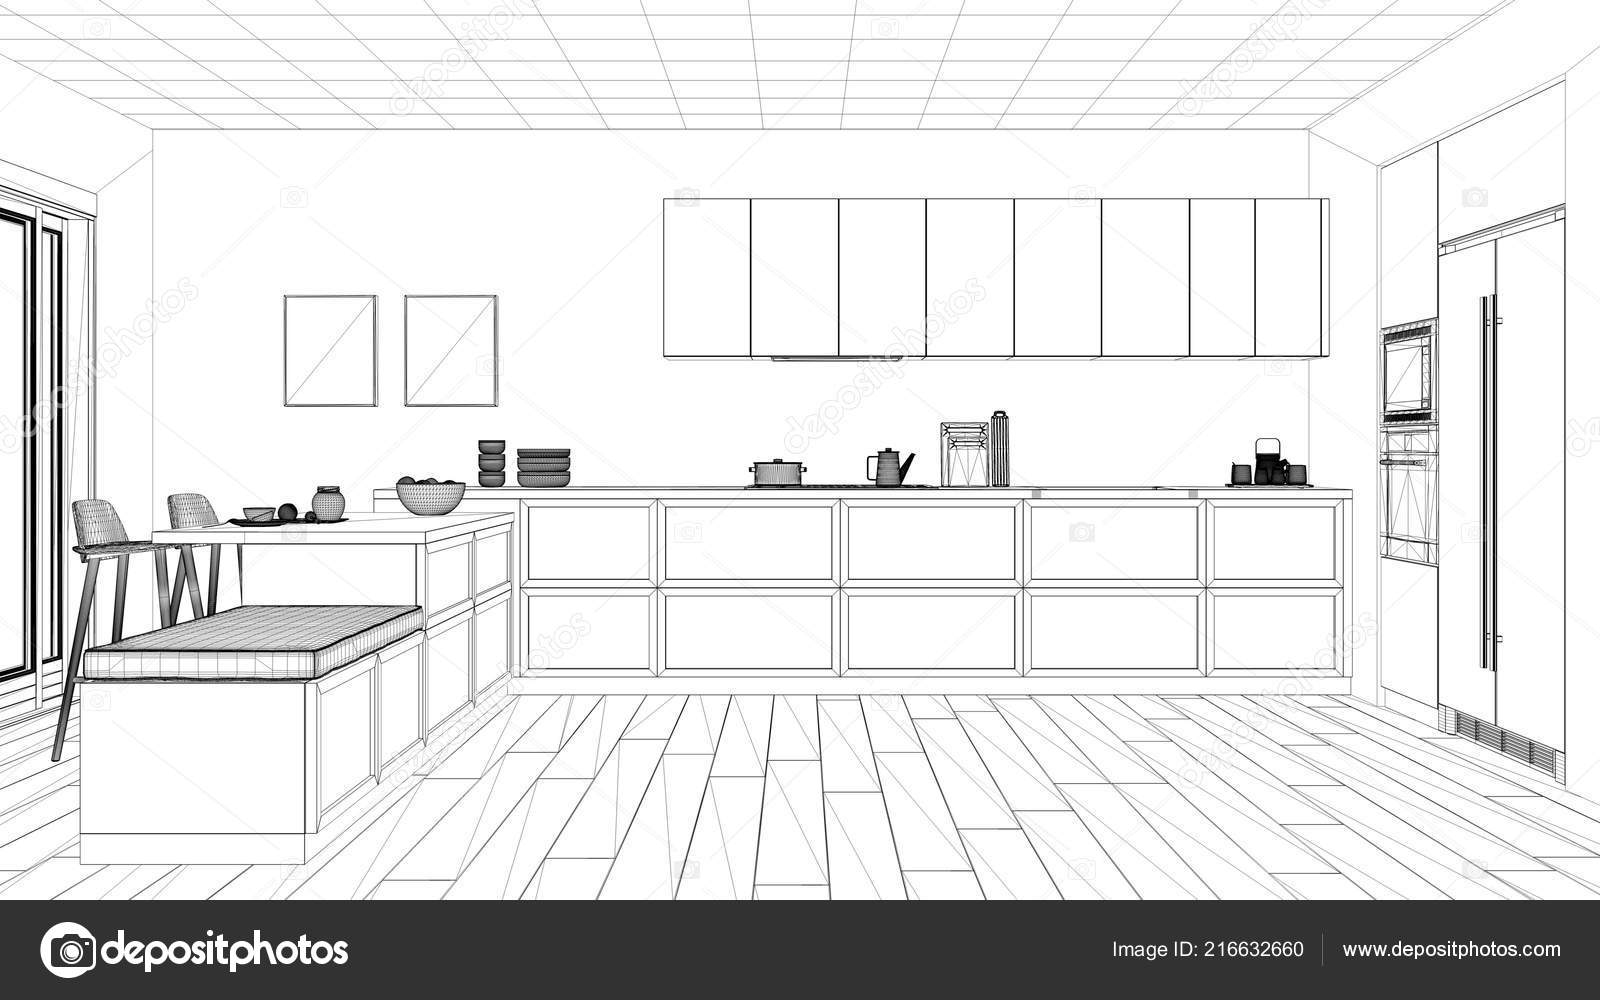 Interior Design Project Black White Ink Sketch Architecture Blueprint Showing u2014 Stock Photo  sc 1 st  Depositphotos & Interior Design Project Black White Ink Sketch Architecture ...